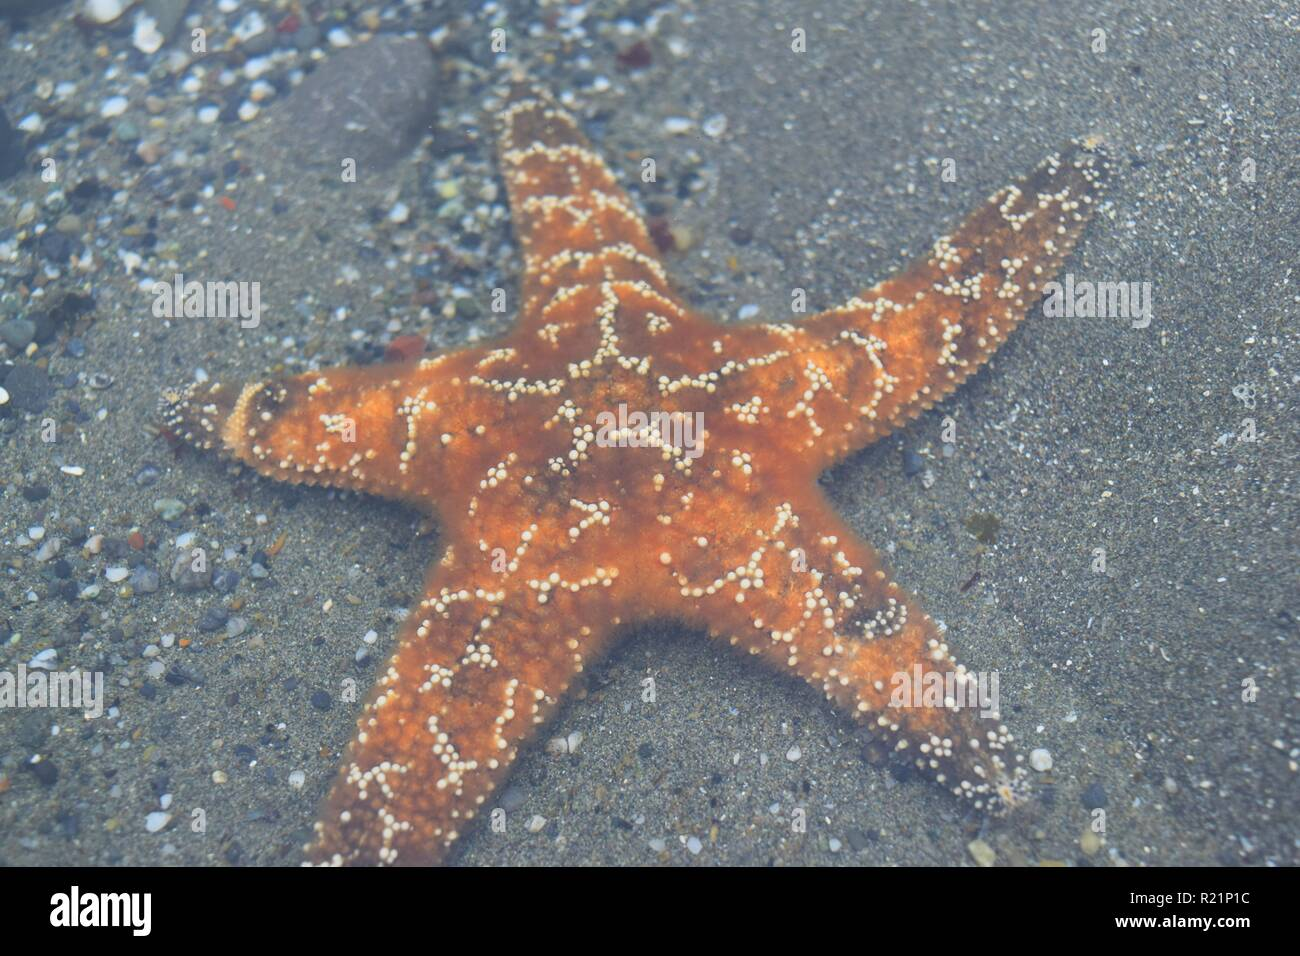 Close Up of Orange Starfish in Tide Pool - Stock Image